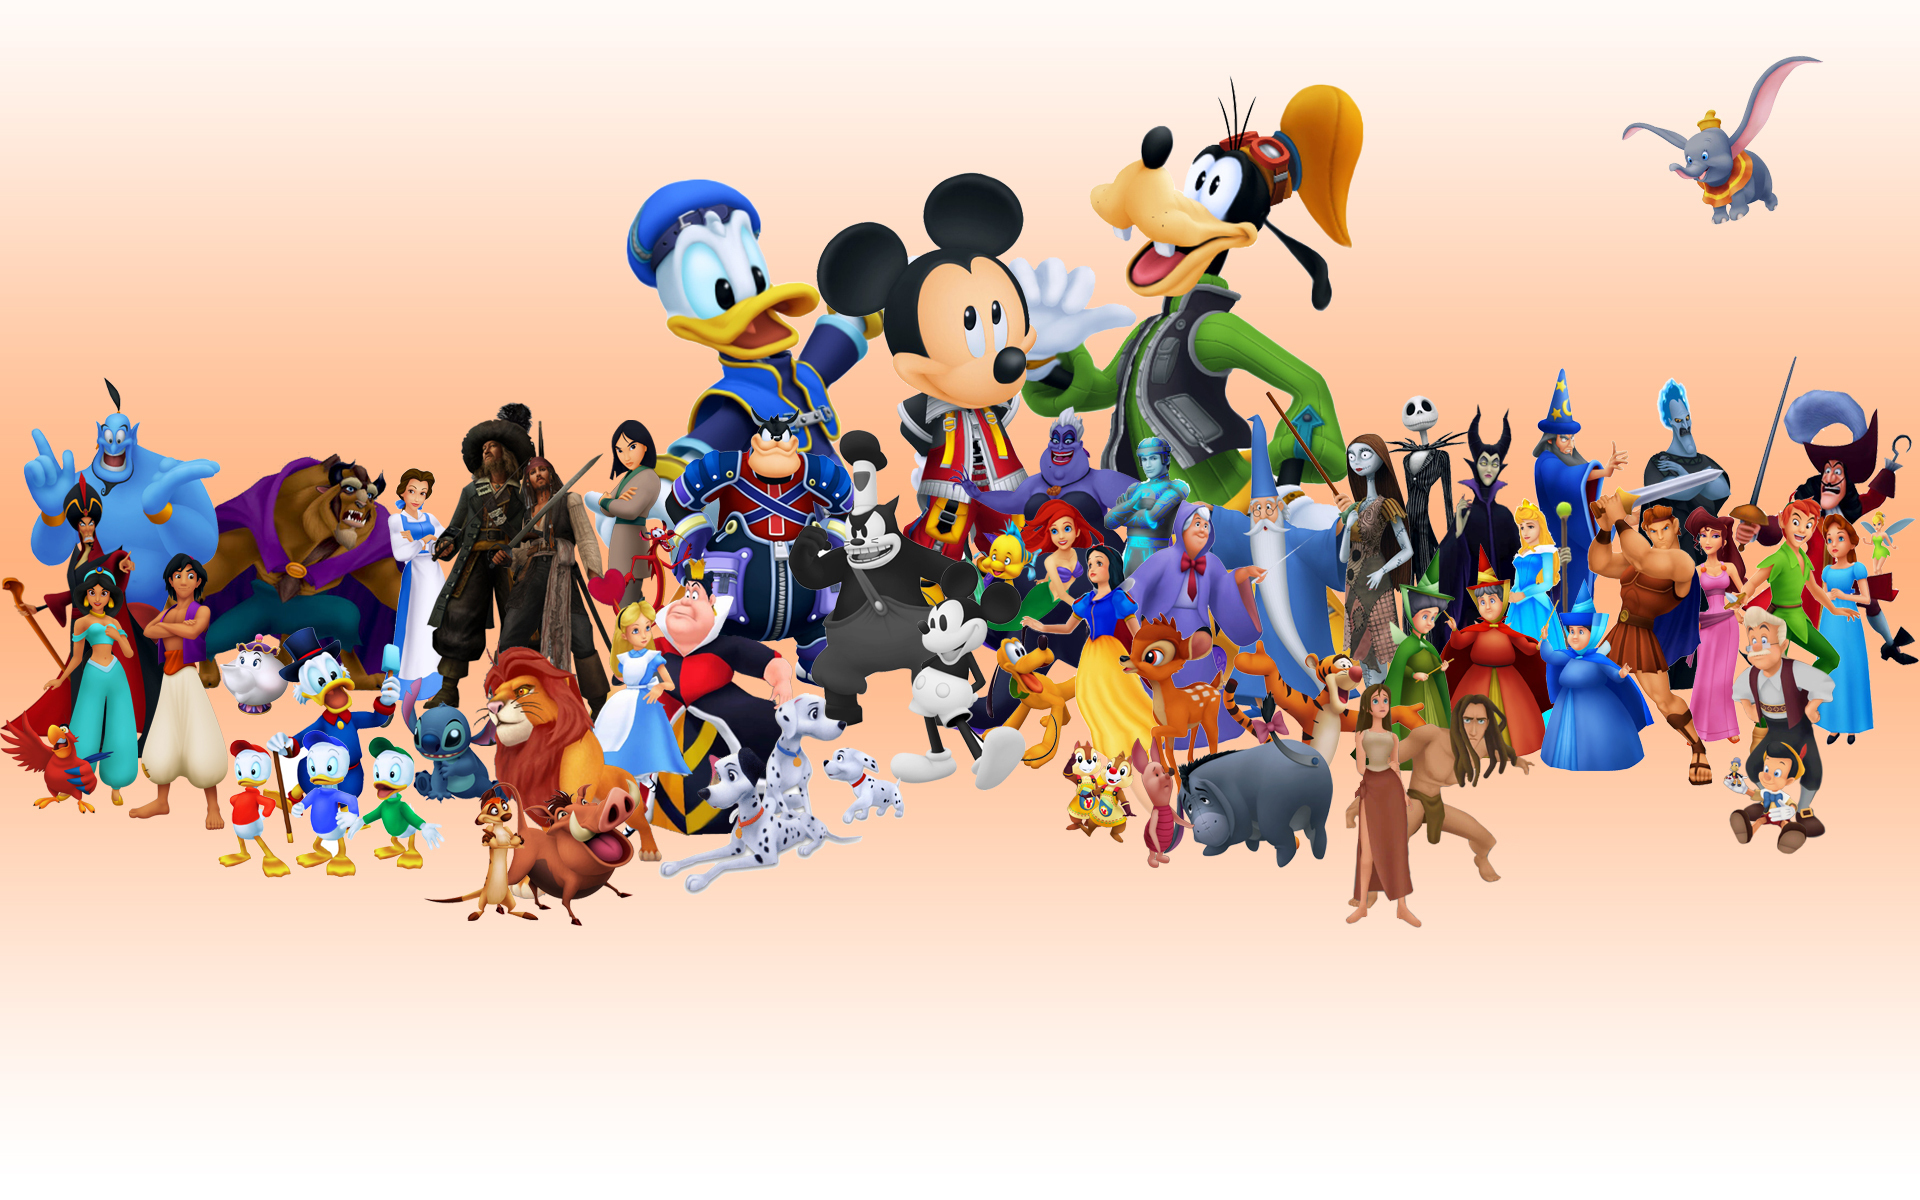 Disney Wallpapers For Desktop Free Download